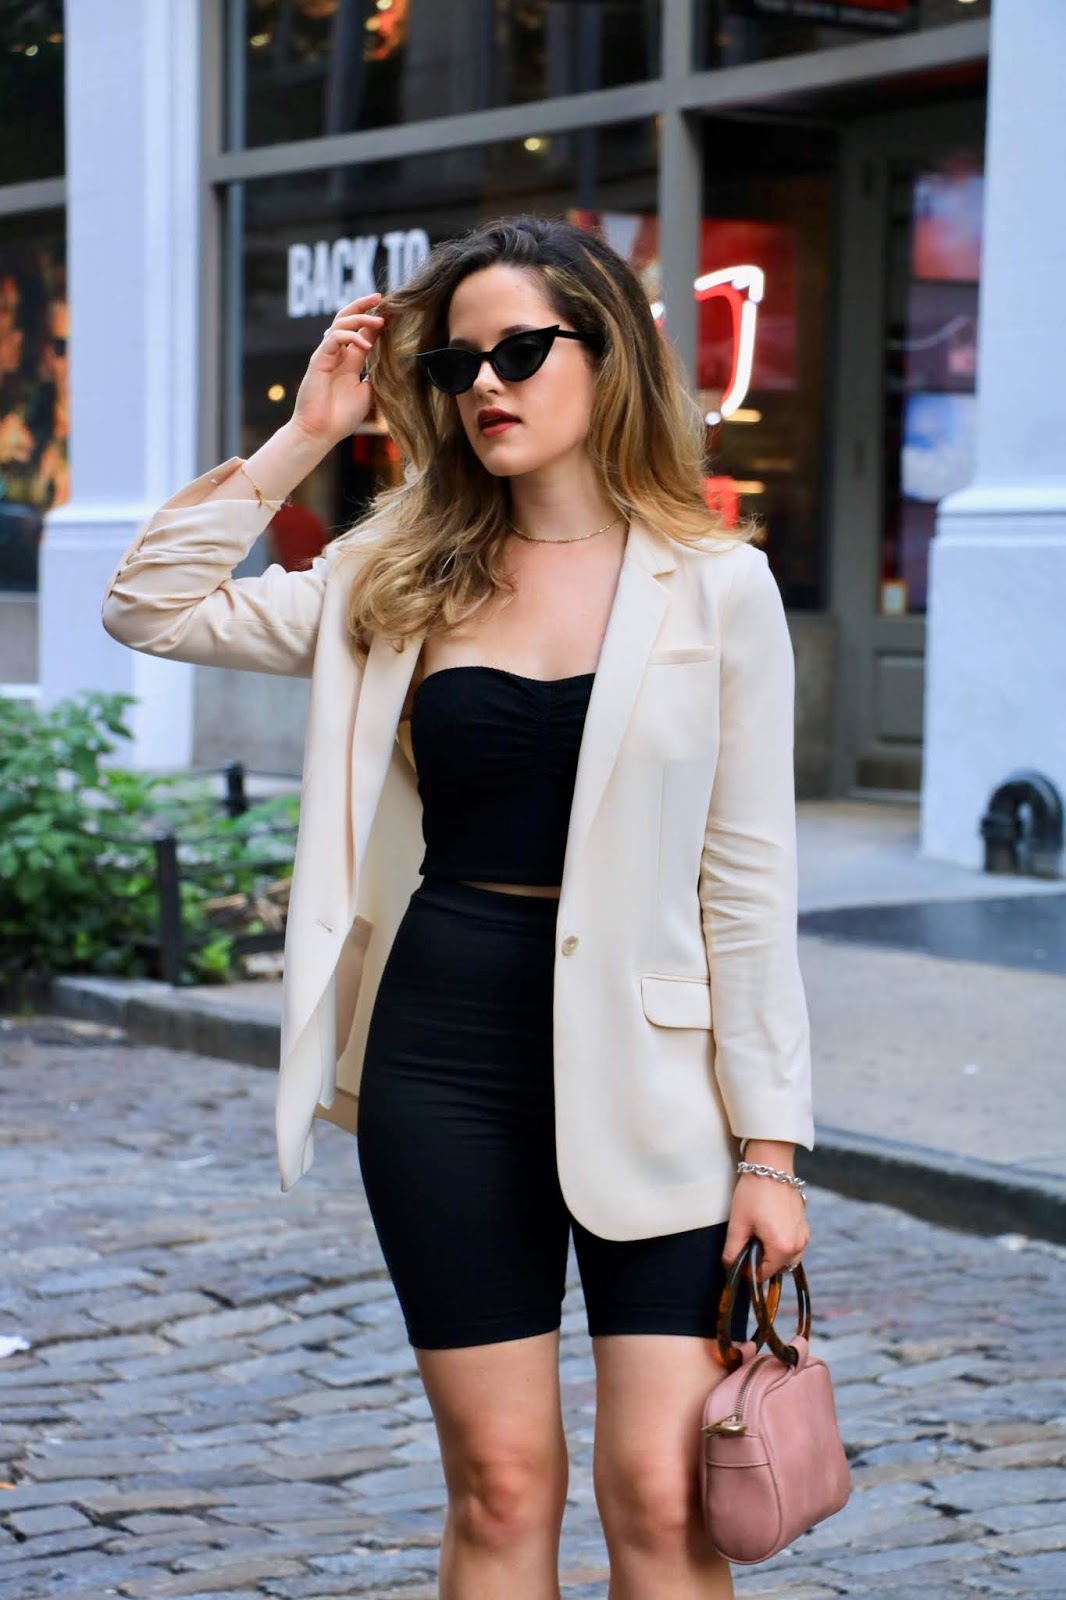 Nyc fashion blogger Kathleen Harper sharing Soho photoshoot locations.